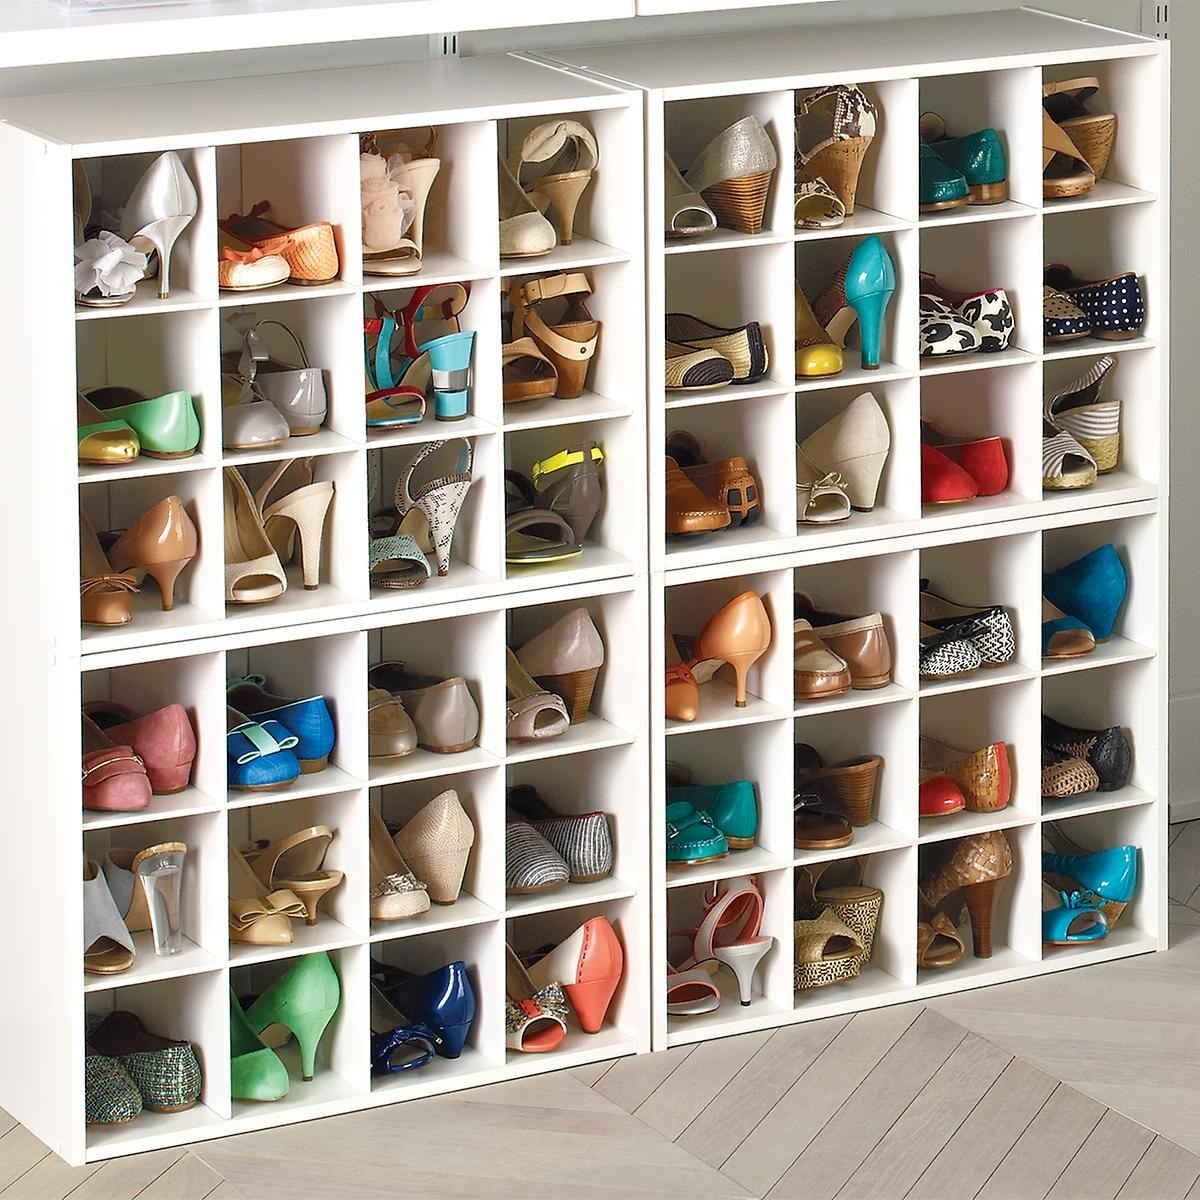 Get it from The Container Store for $39.99.